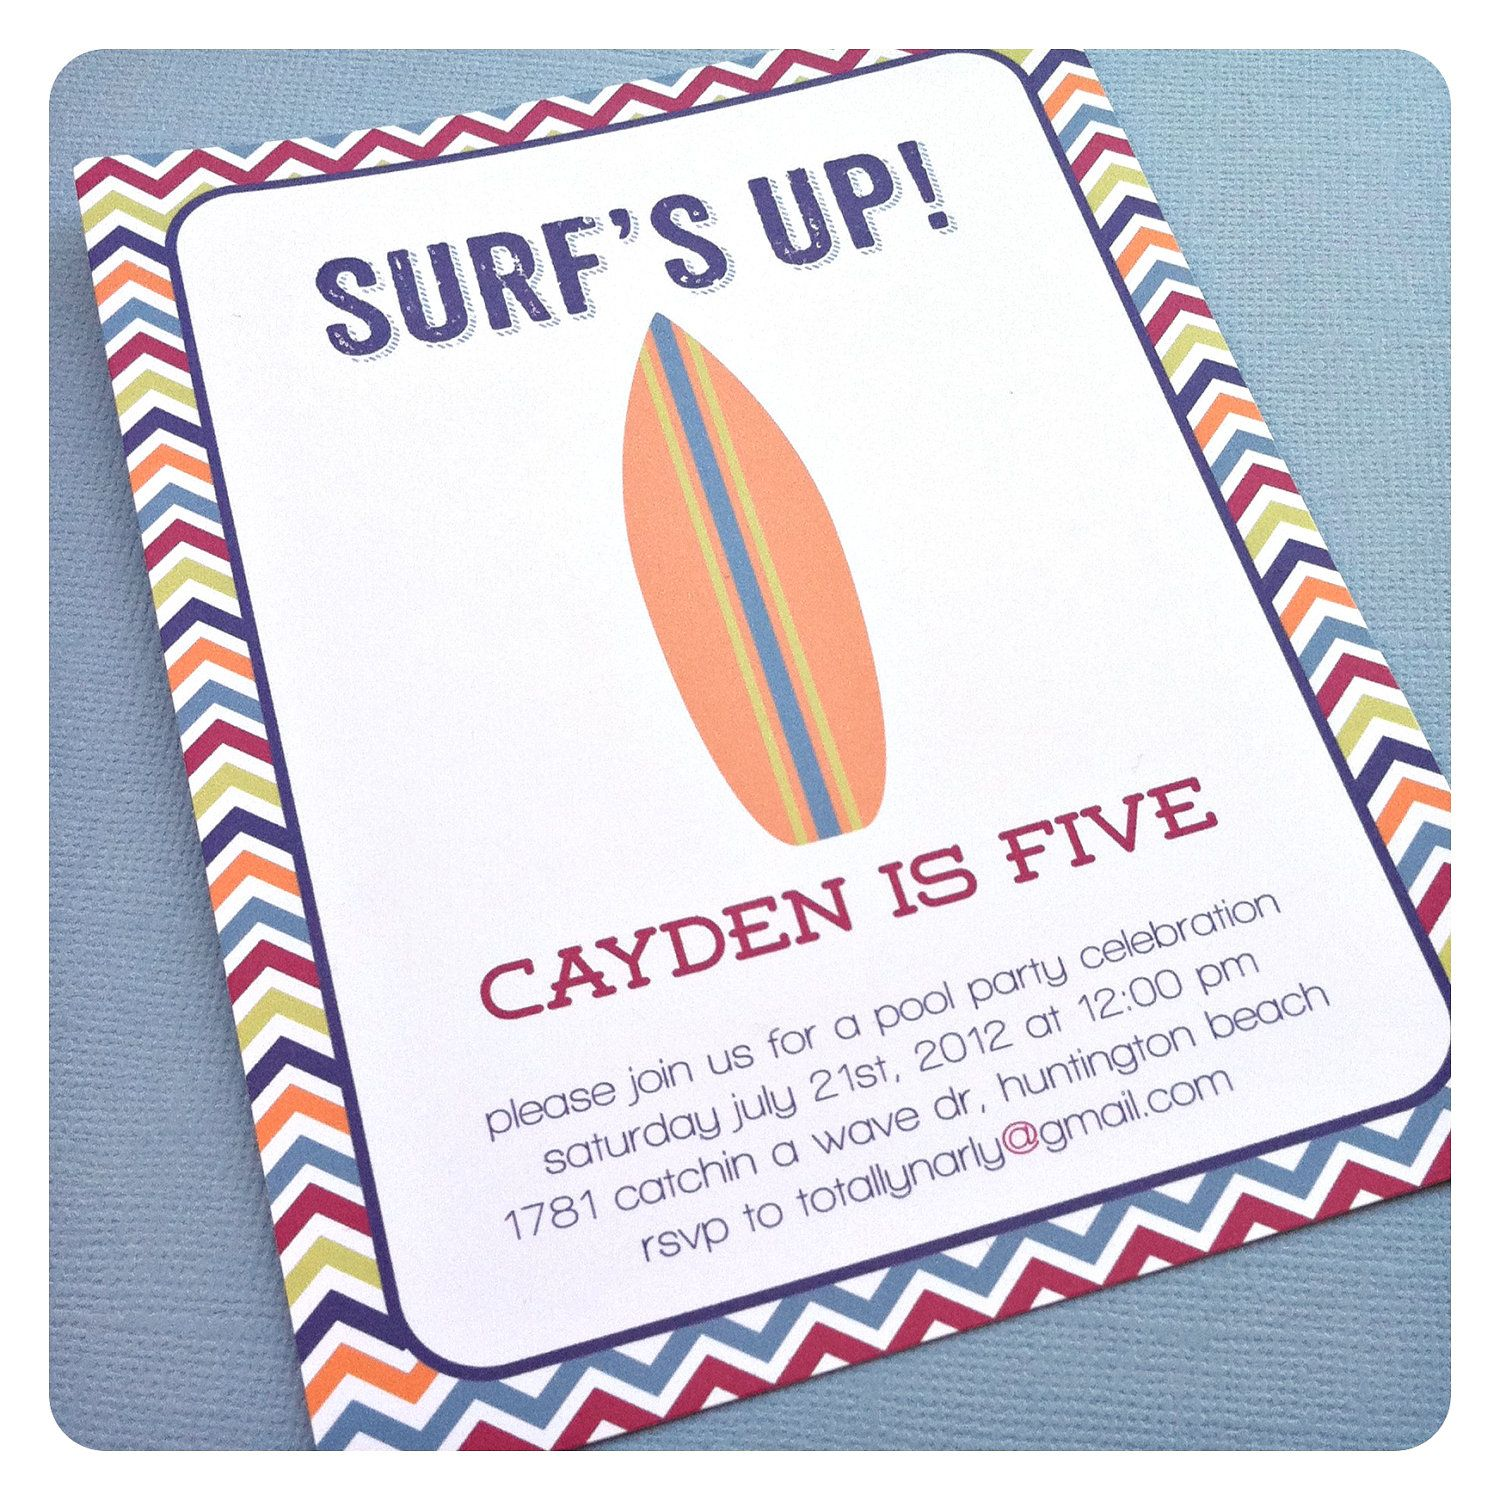 a totally rad surfer dude pool party invitation